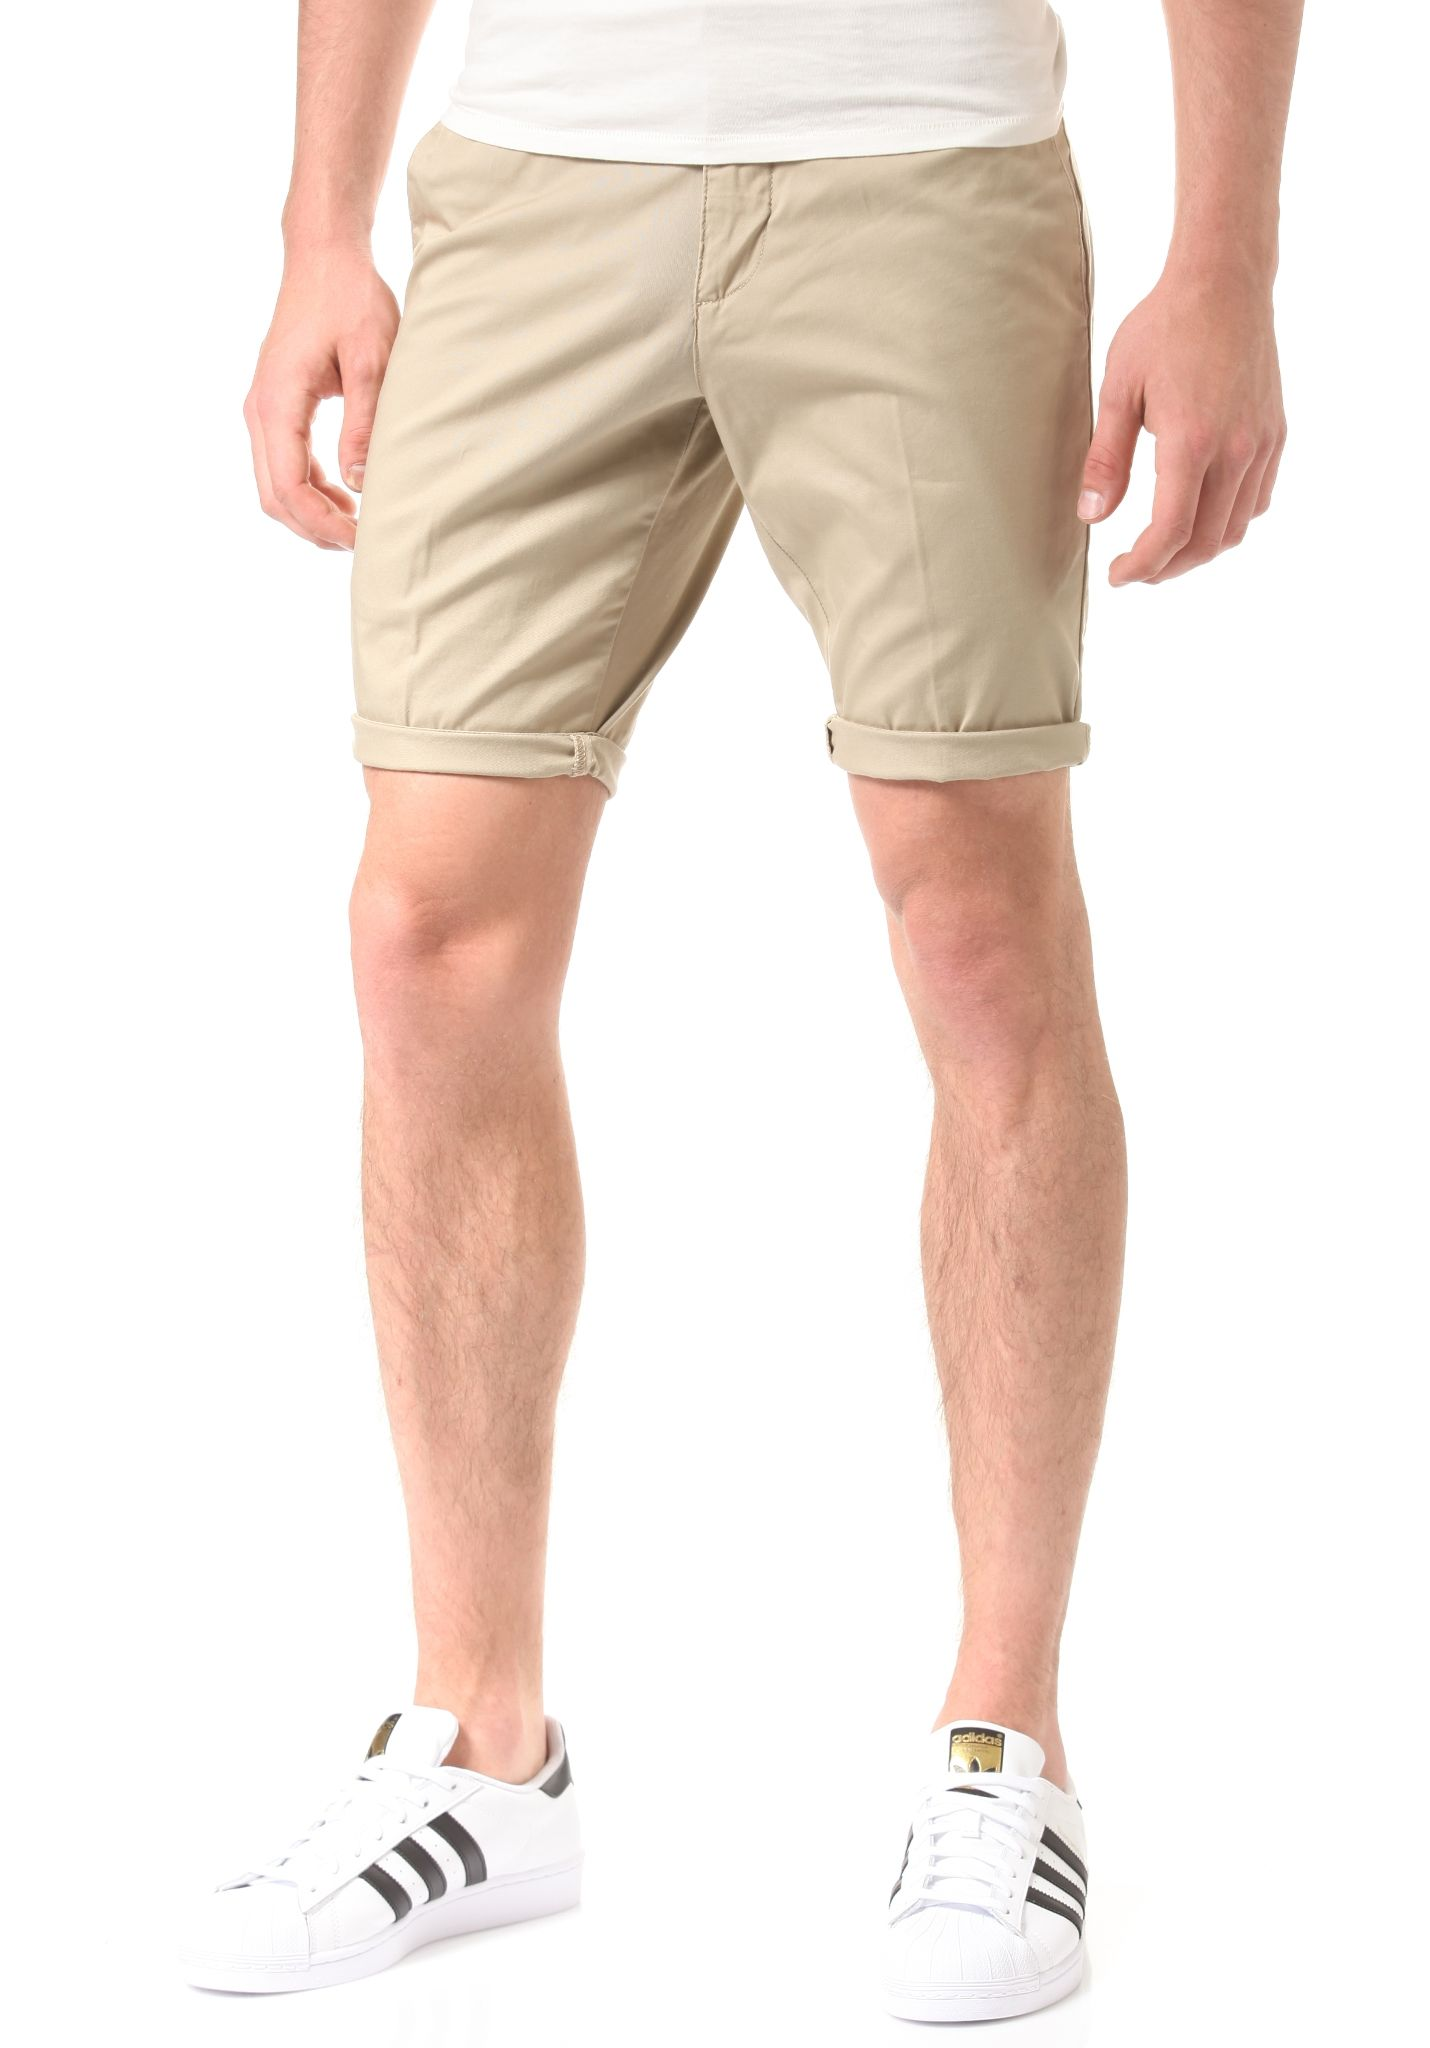 carhartt WIP Sid - Chino Shorts for Men - Planet Sports